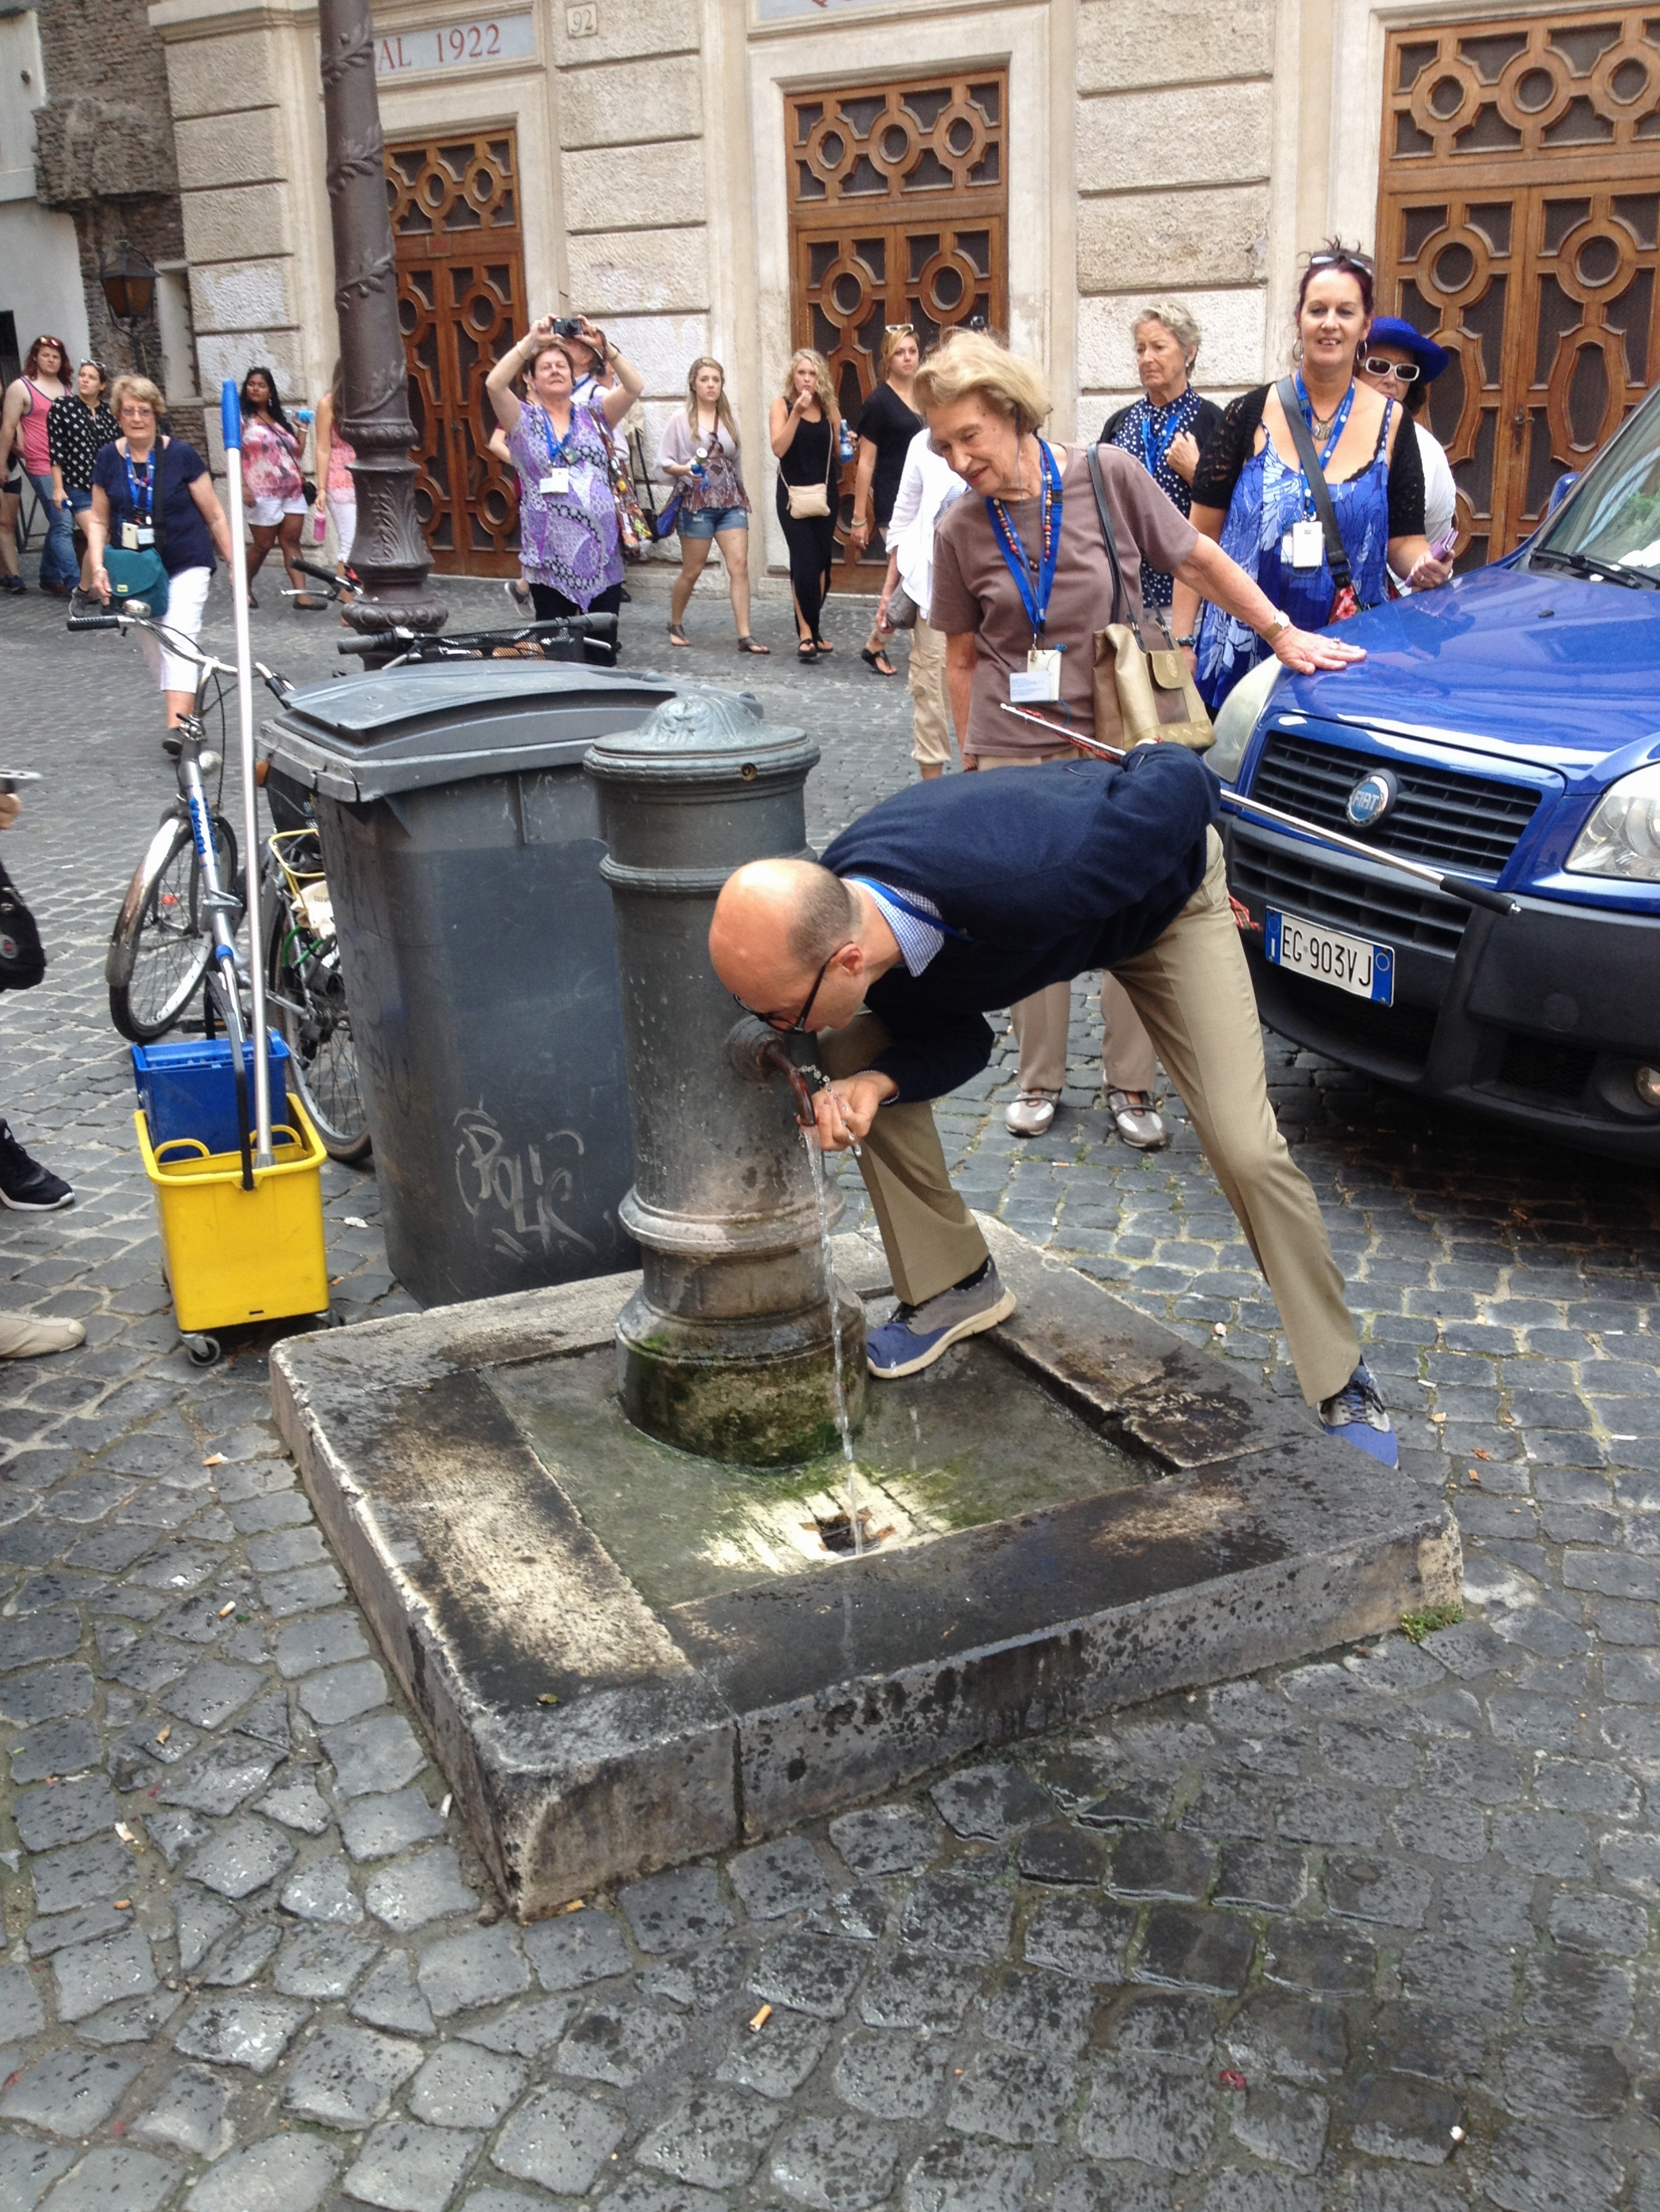 Vittorio shows us how to drink water